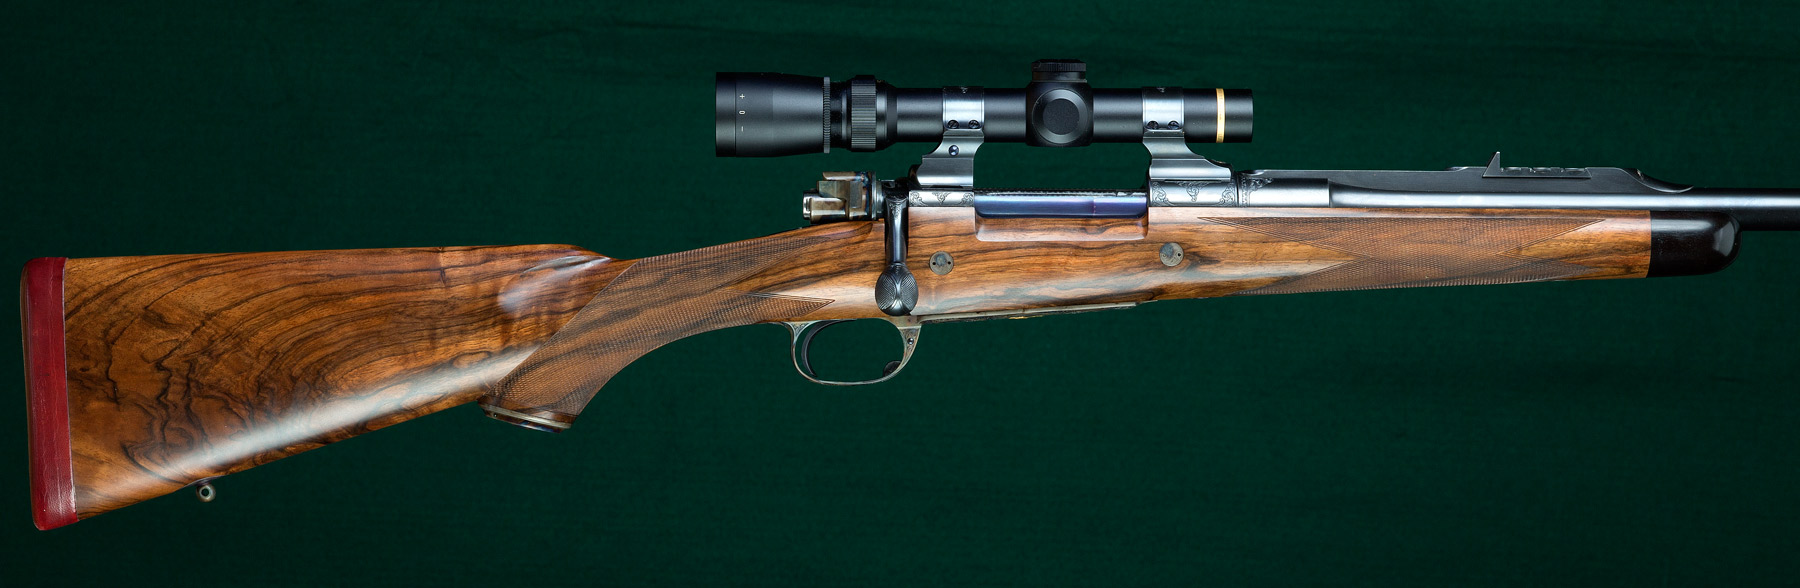 Historical Gallery of Fine Contemporary Magazine Rifles ...